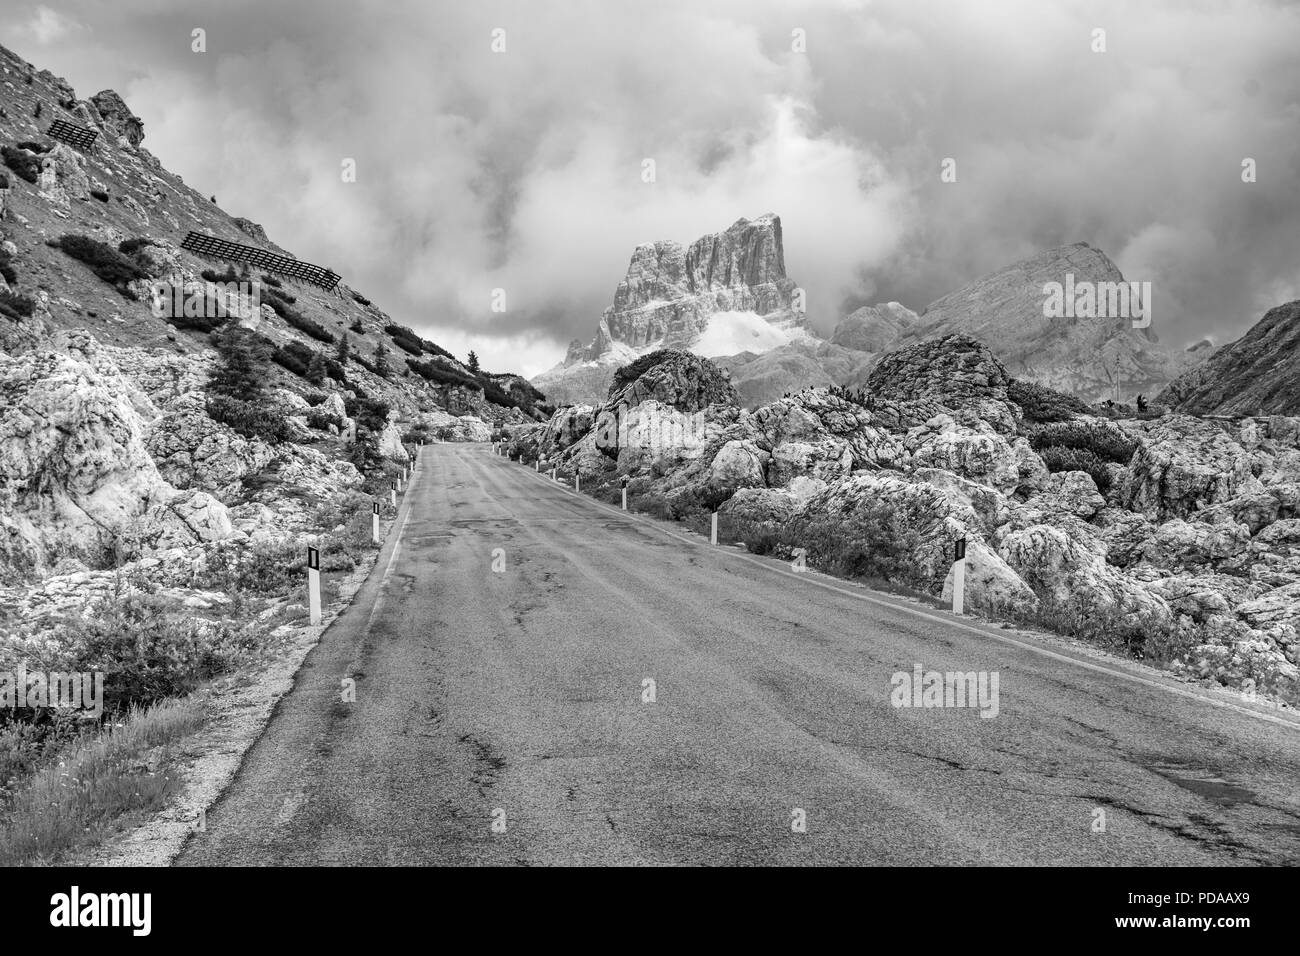 Empty deserted road in black and white leading to menacing stormy, cloudy mountains in the Dolomites, Italy - Stock Image